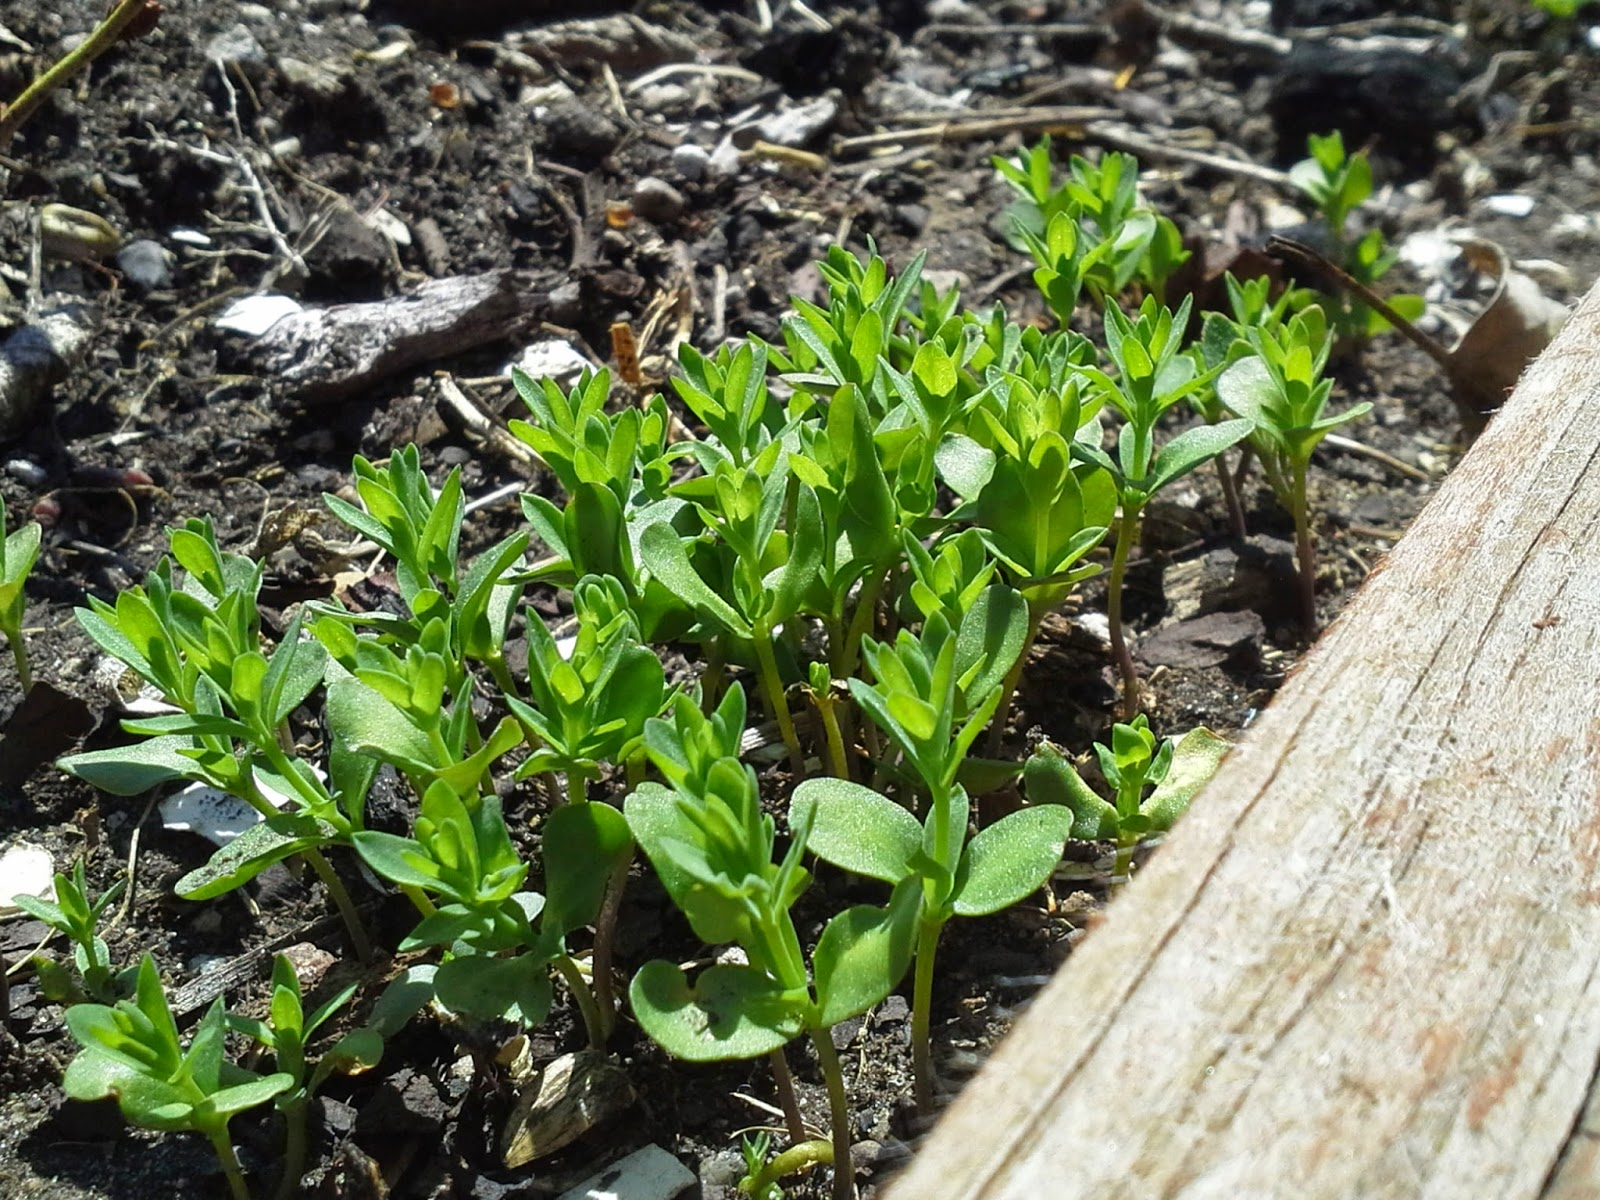 Golden Flax seedlings